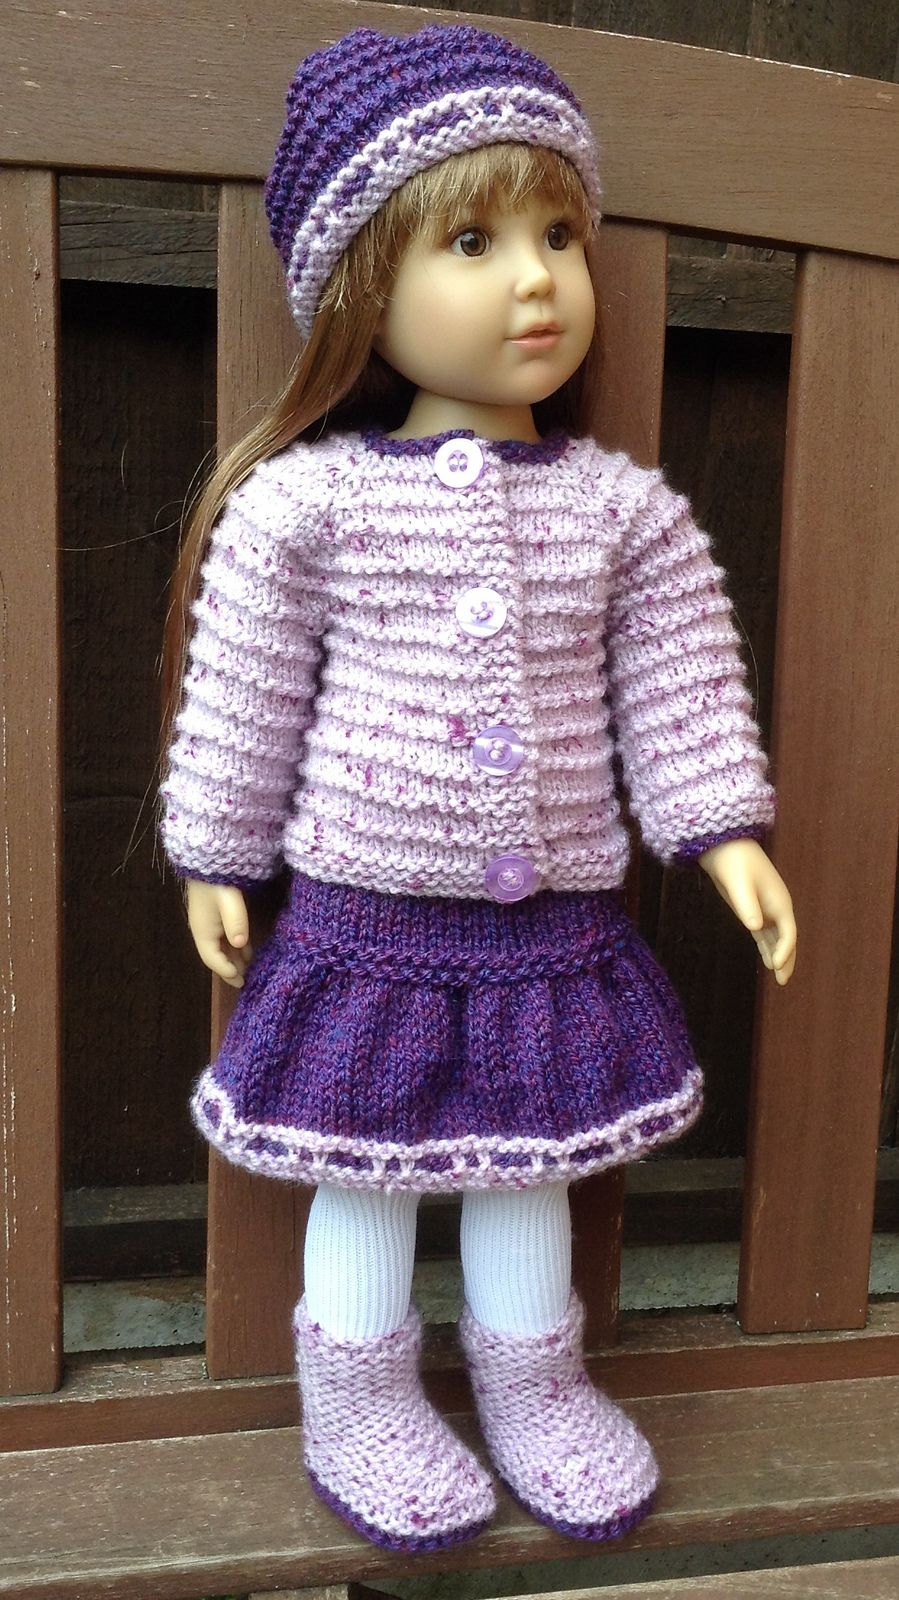 Ravelry: KC02 Top Down Cardi for Kidz n Cats Dolls by Jacqueline Gibb